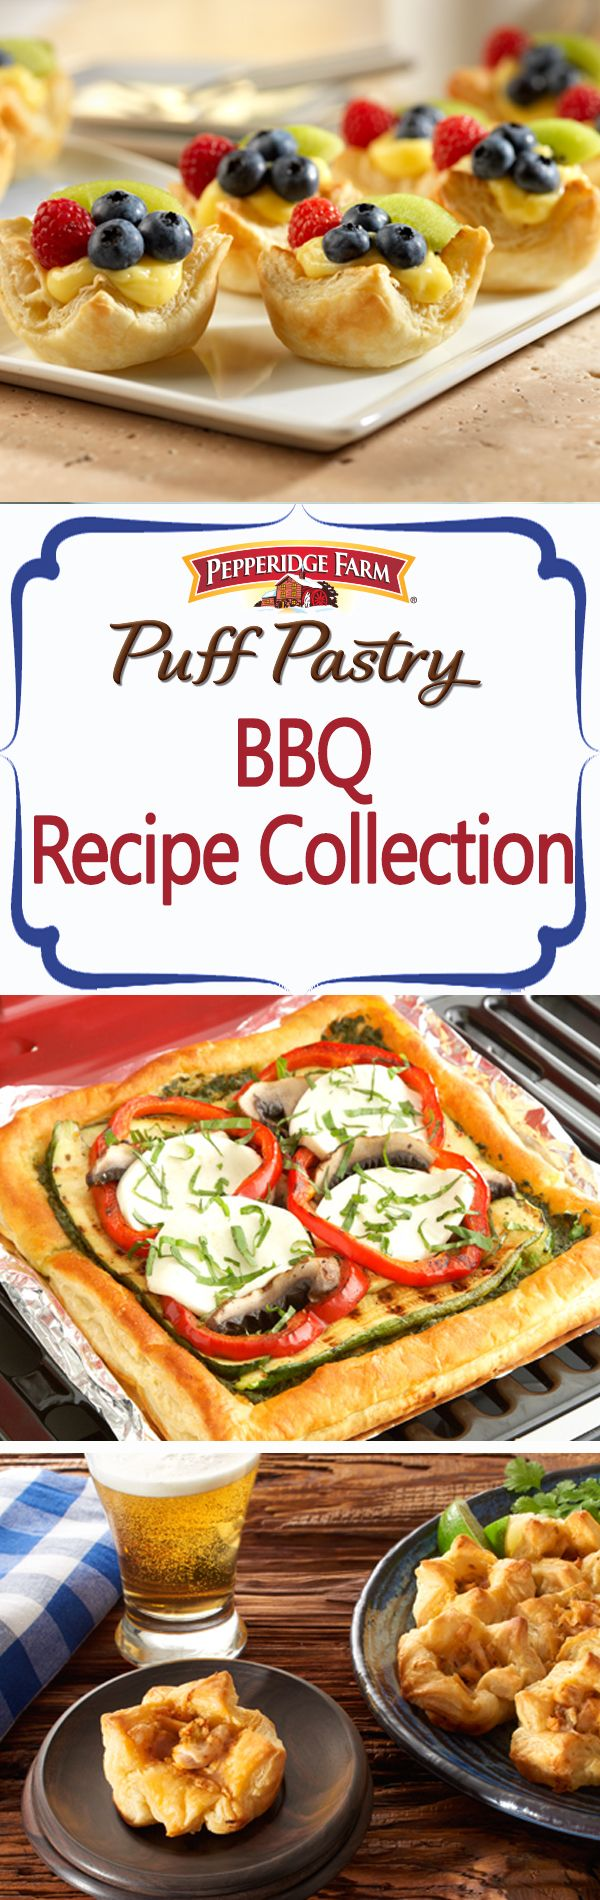 Puff Pastry BBQ Recipe Collection. Every great BBQ deserves fantastic food! Don't miss this ultimate list of our favorite backyard cookout foods from spicy Mexican Chicken Puffs that pair perfectly with a cold beer, to grilled veggie Puff Pizza and perfectly pretty berry tarts. Throw an unforgettable event with these simple additions to your menu.